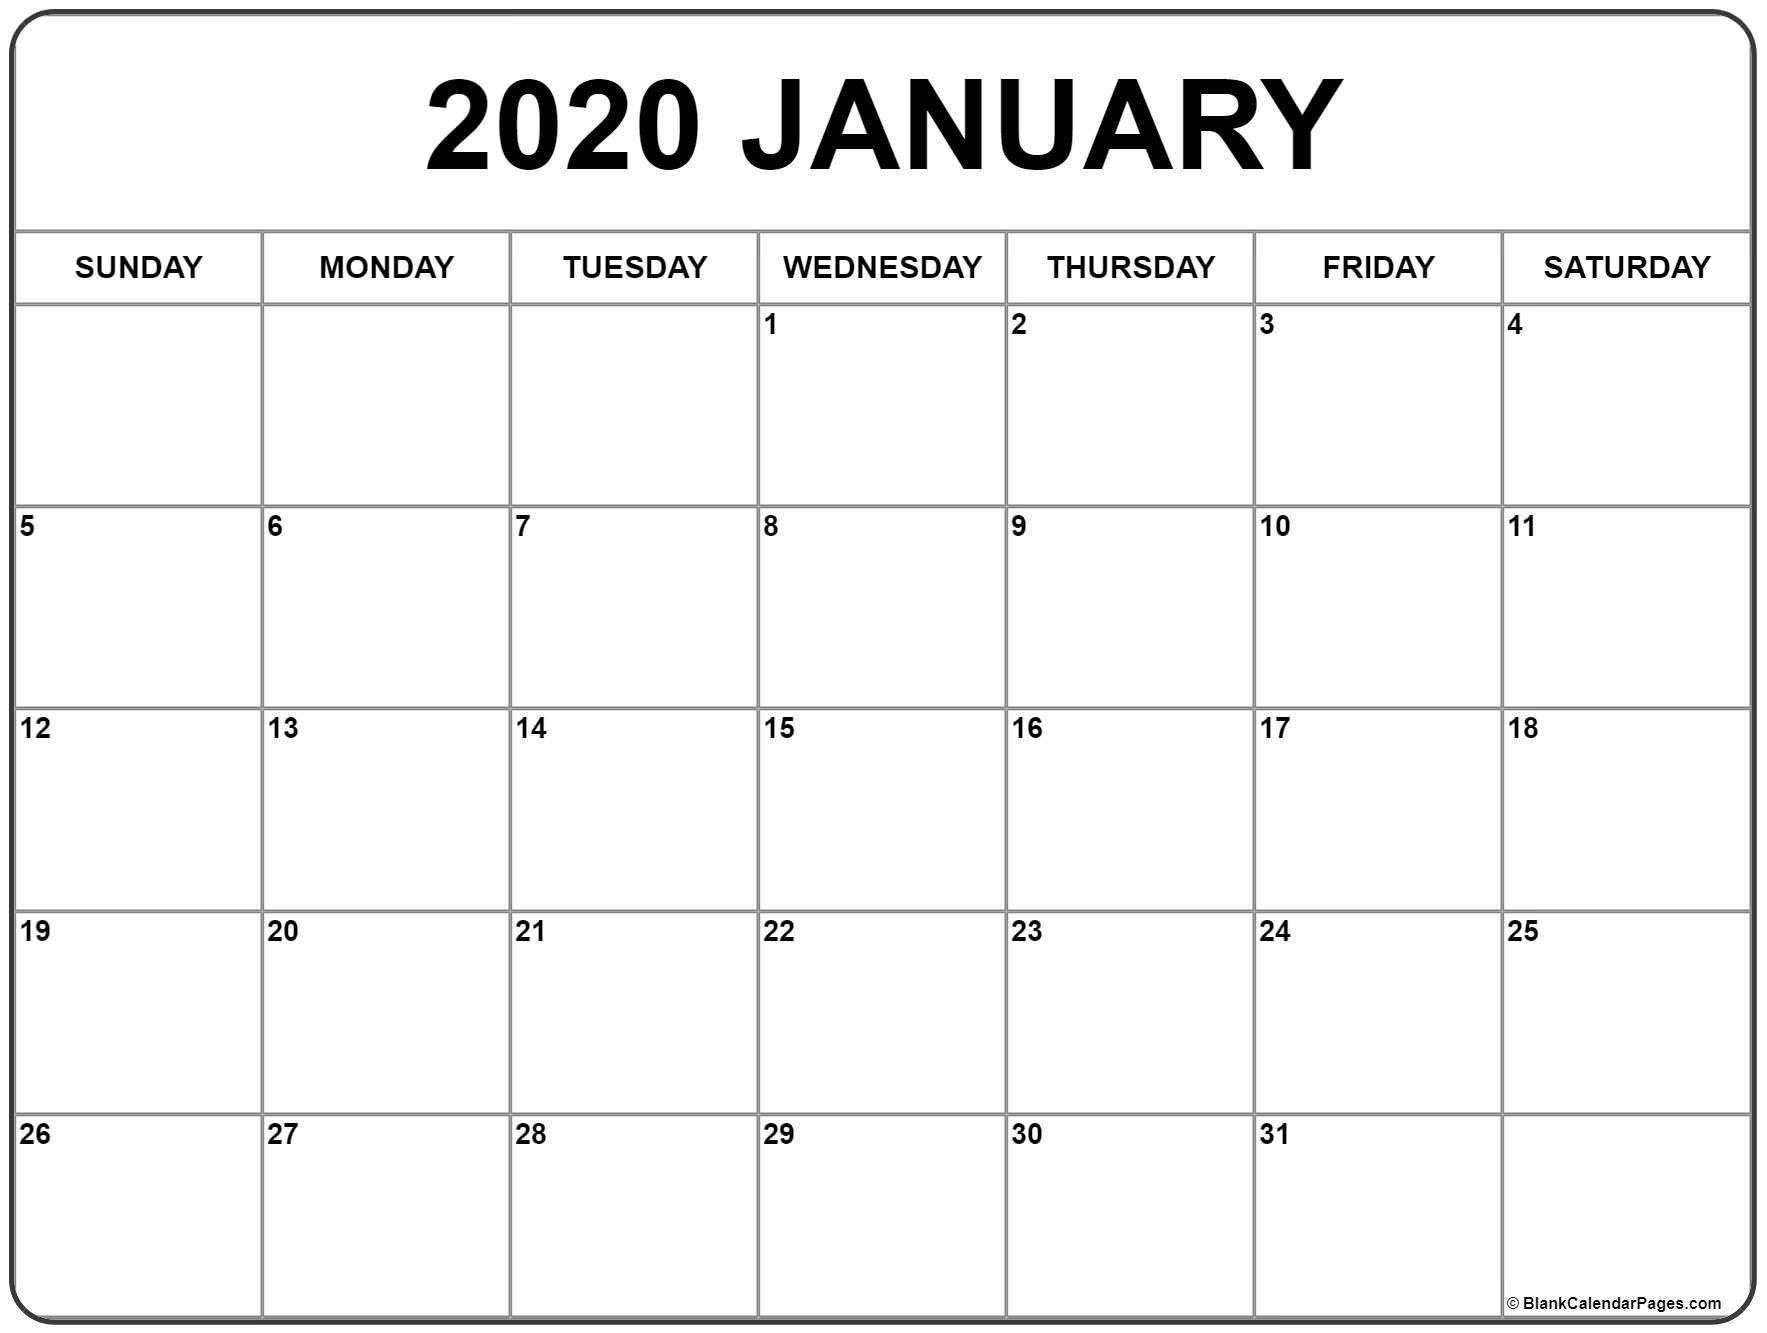 January 2020 Calendar | Free Printable Monthly Calendars  Calendar Templates 2020 Printable